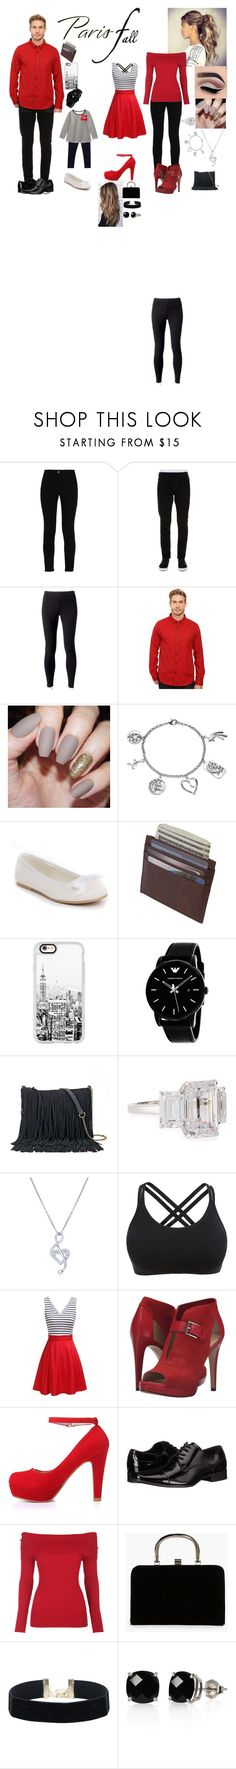 """family time"" by pandaaaaaaa2020 ❤ liked on Polyvore featuring STELLA McCARTNEY, Off-White, Jockey, United by Blue, Love This Life, Casetify, Giorgio Armani, SONOMA Goods for Life, Fantasia by DeSerio and BERRICLE"